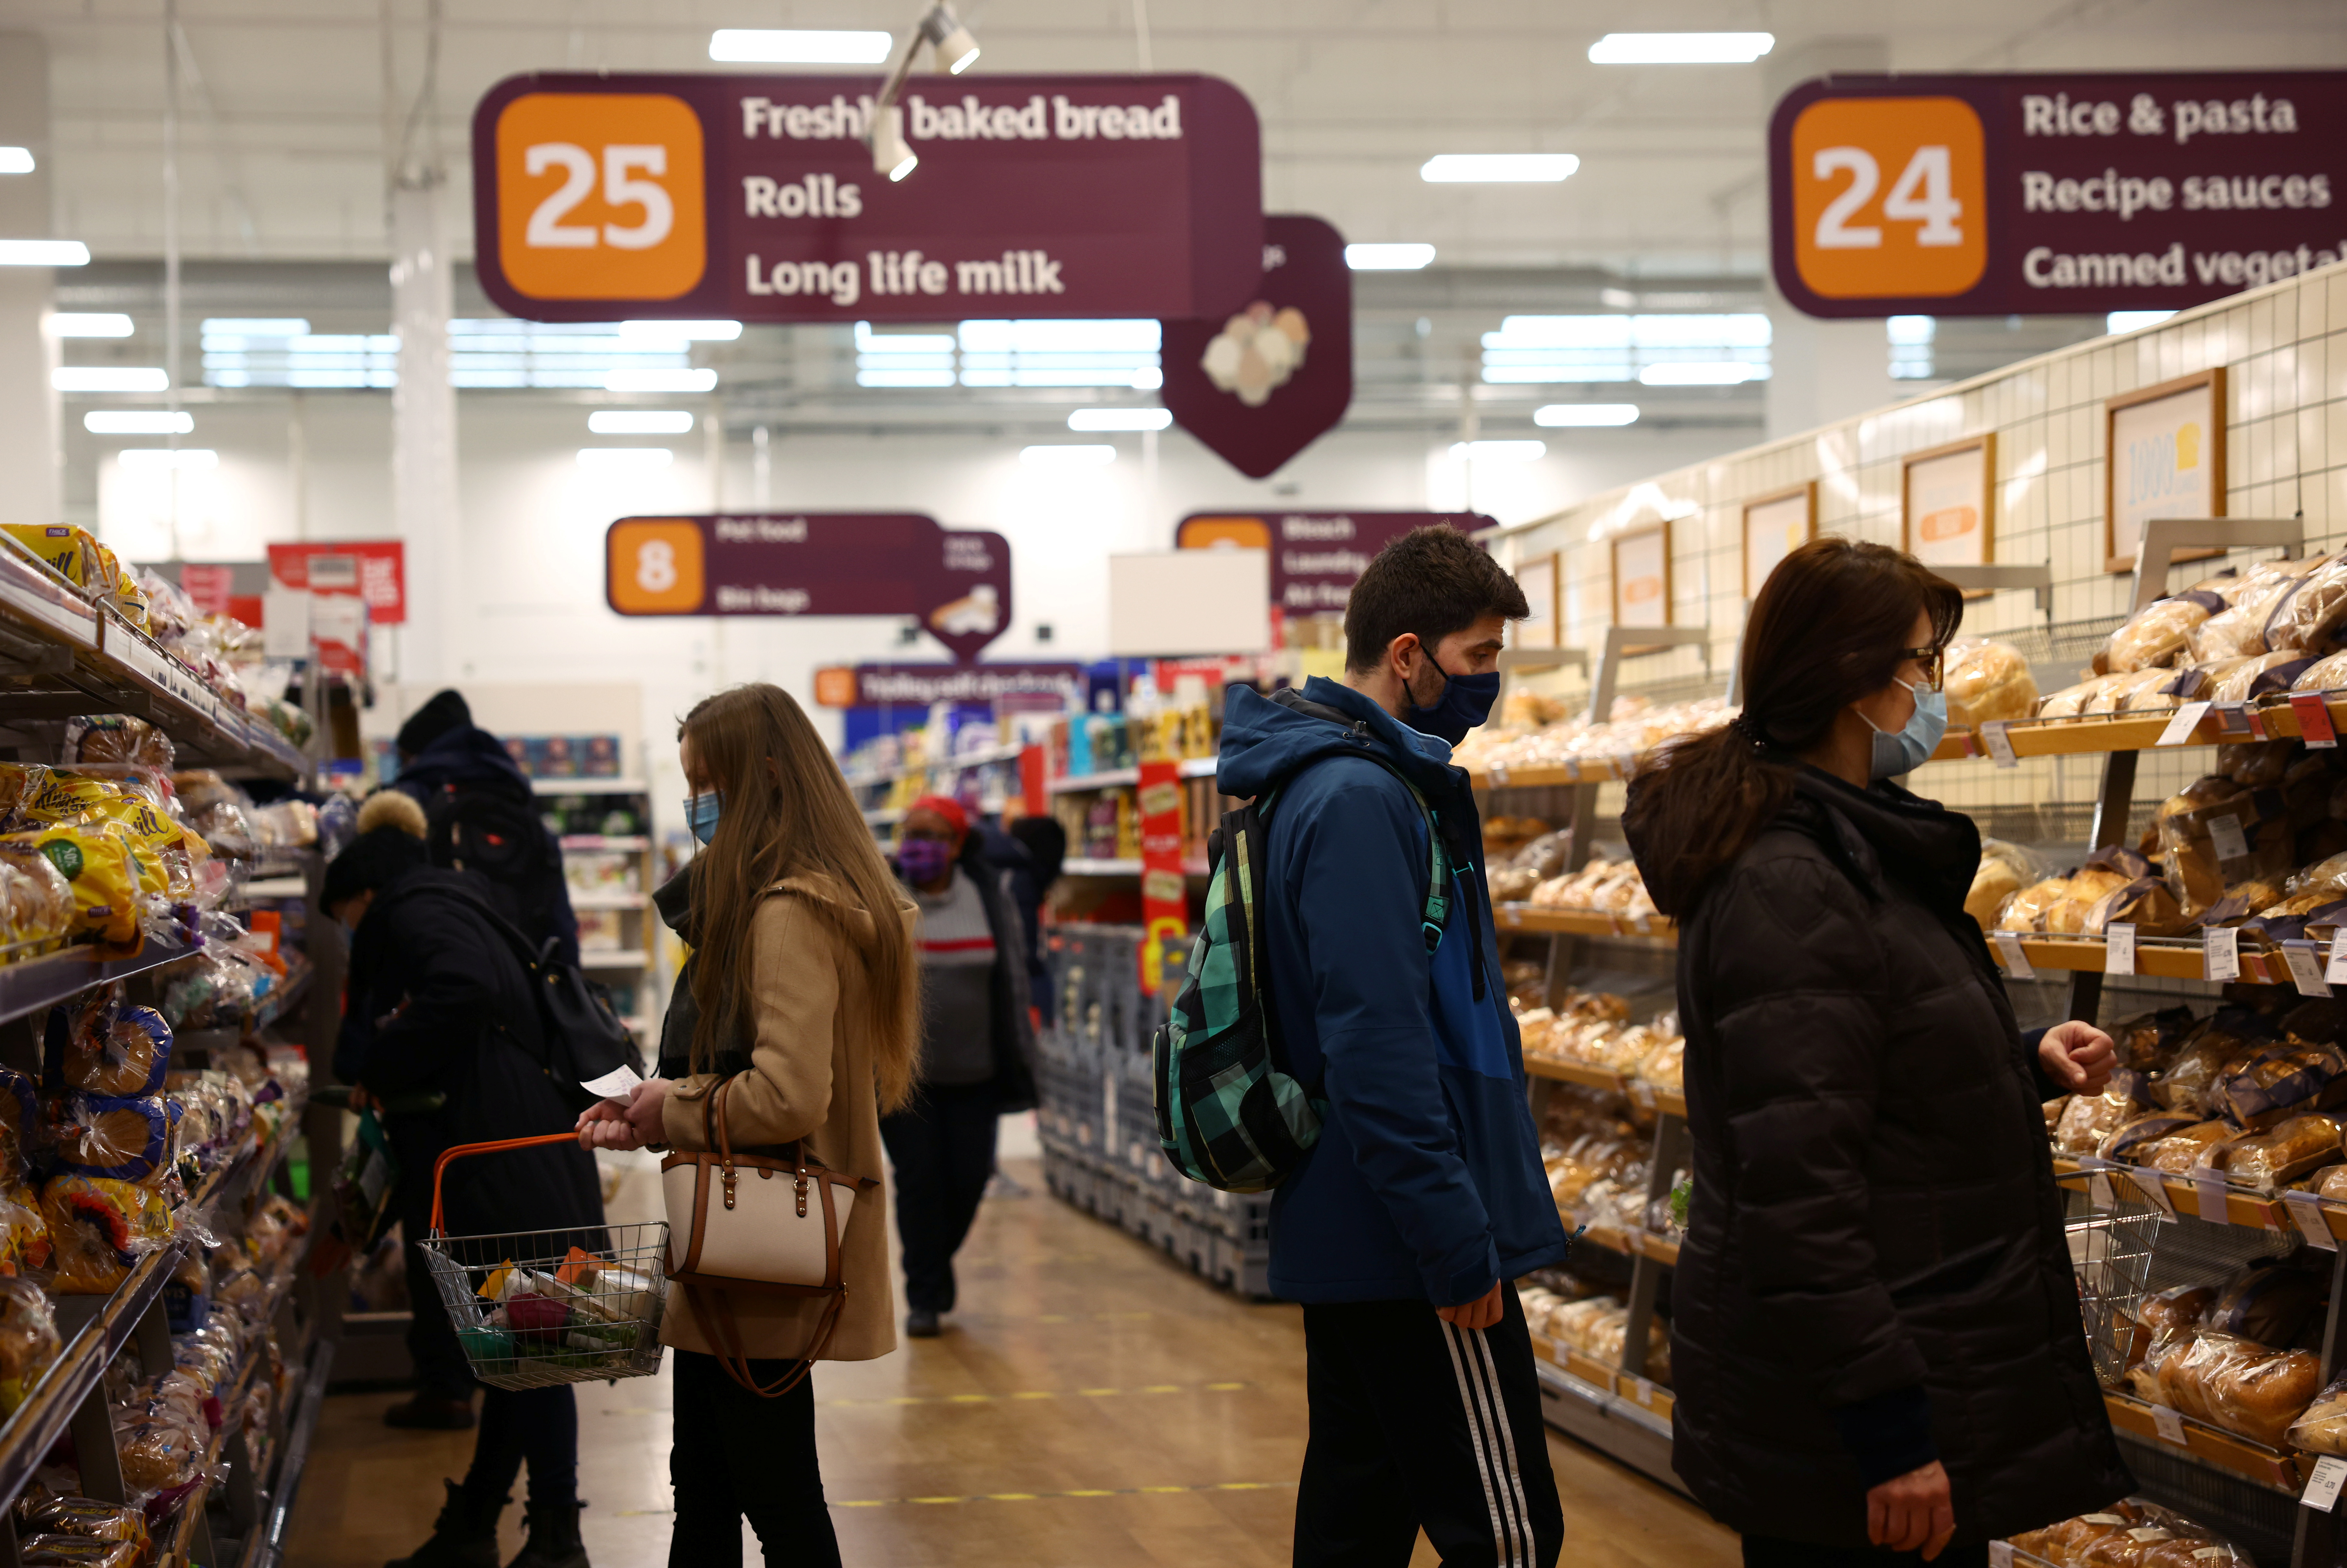 Shoppers are seen in a Sainsbury's supermarket in London, Britain, January 12, 2021. REUTERS/Henry Nicholls